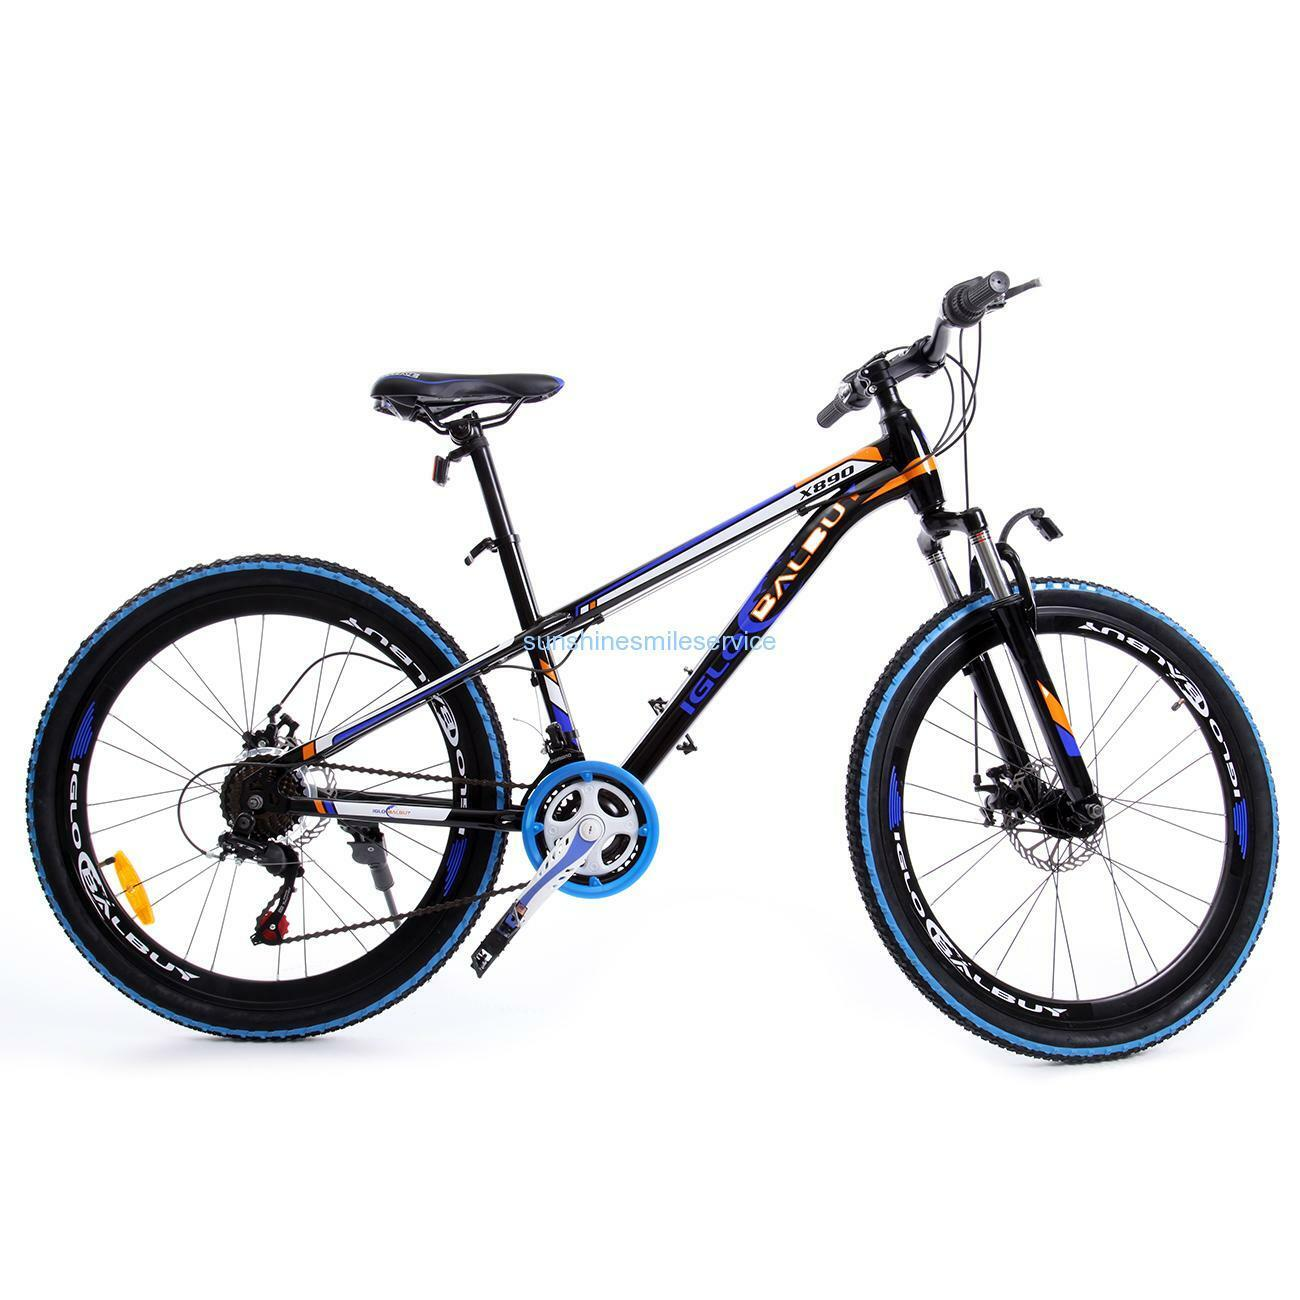 mtb mountainbike fahrrad shimano 26 zoll sieben. Black Bedroom Furniture Sets. Home Design Ideas